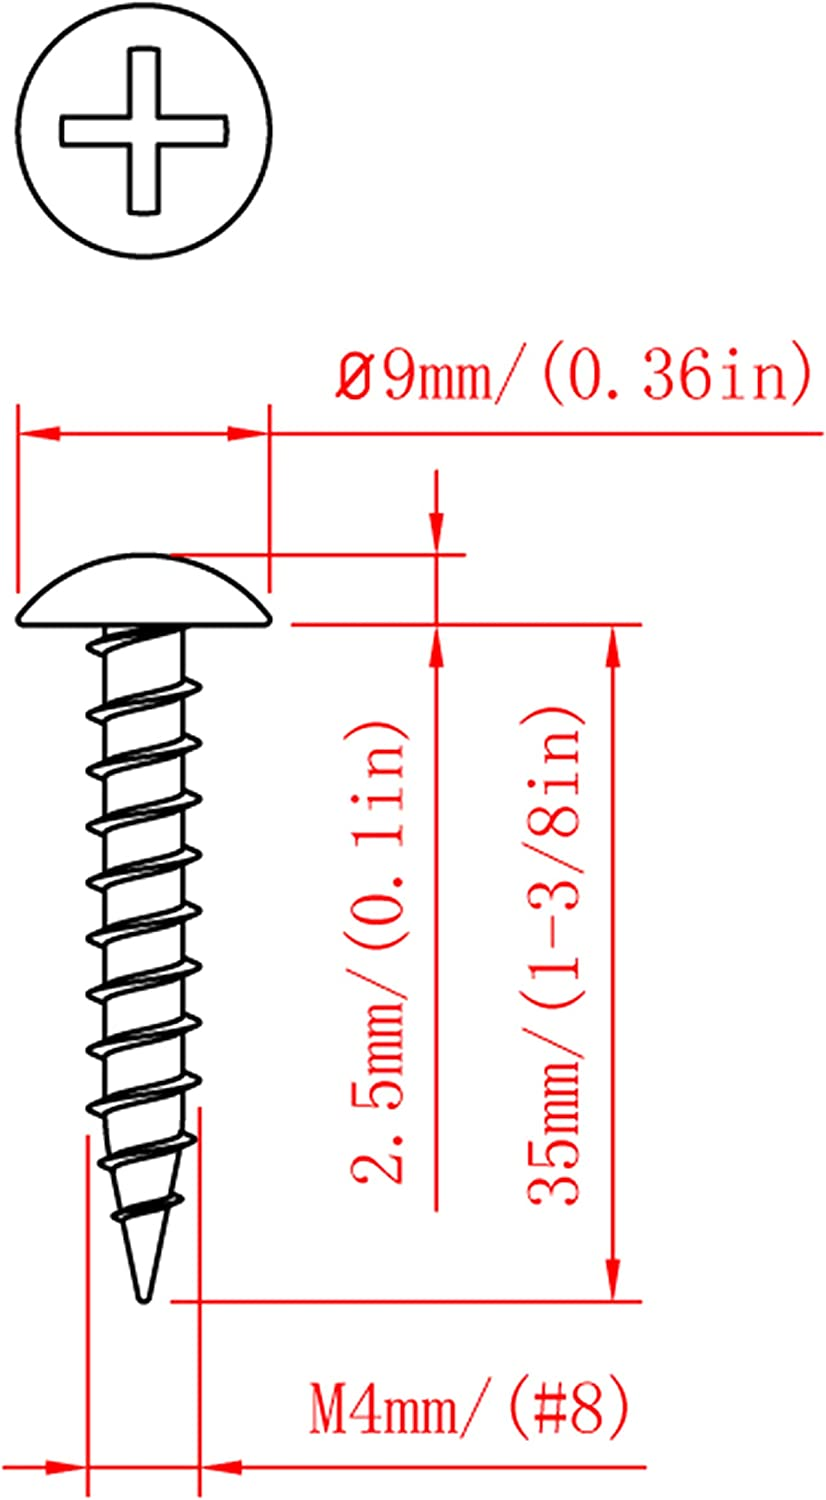 #8 Self-Tapping Screw #8x1in,100pcs Cross recessed pan Head Carbon Steel Material Wood Screw Widened Head Increase Hardness;Length from 1//2in to 1-9//16in. Black Oxide of Surface